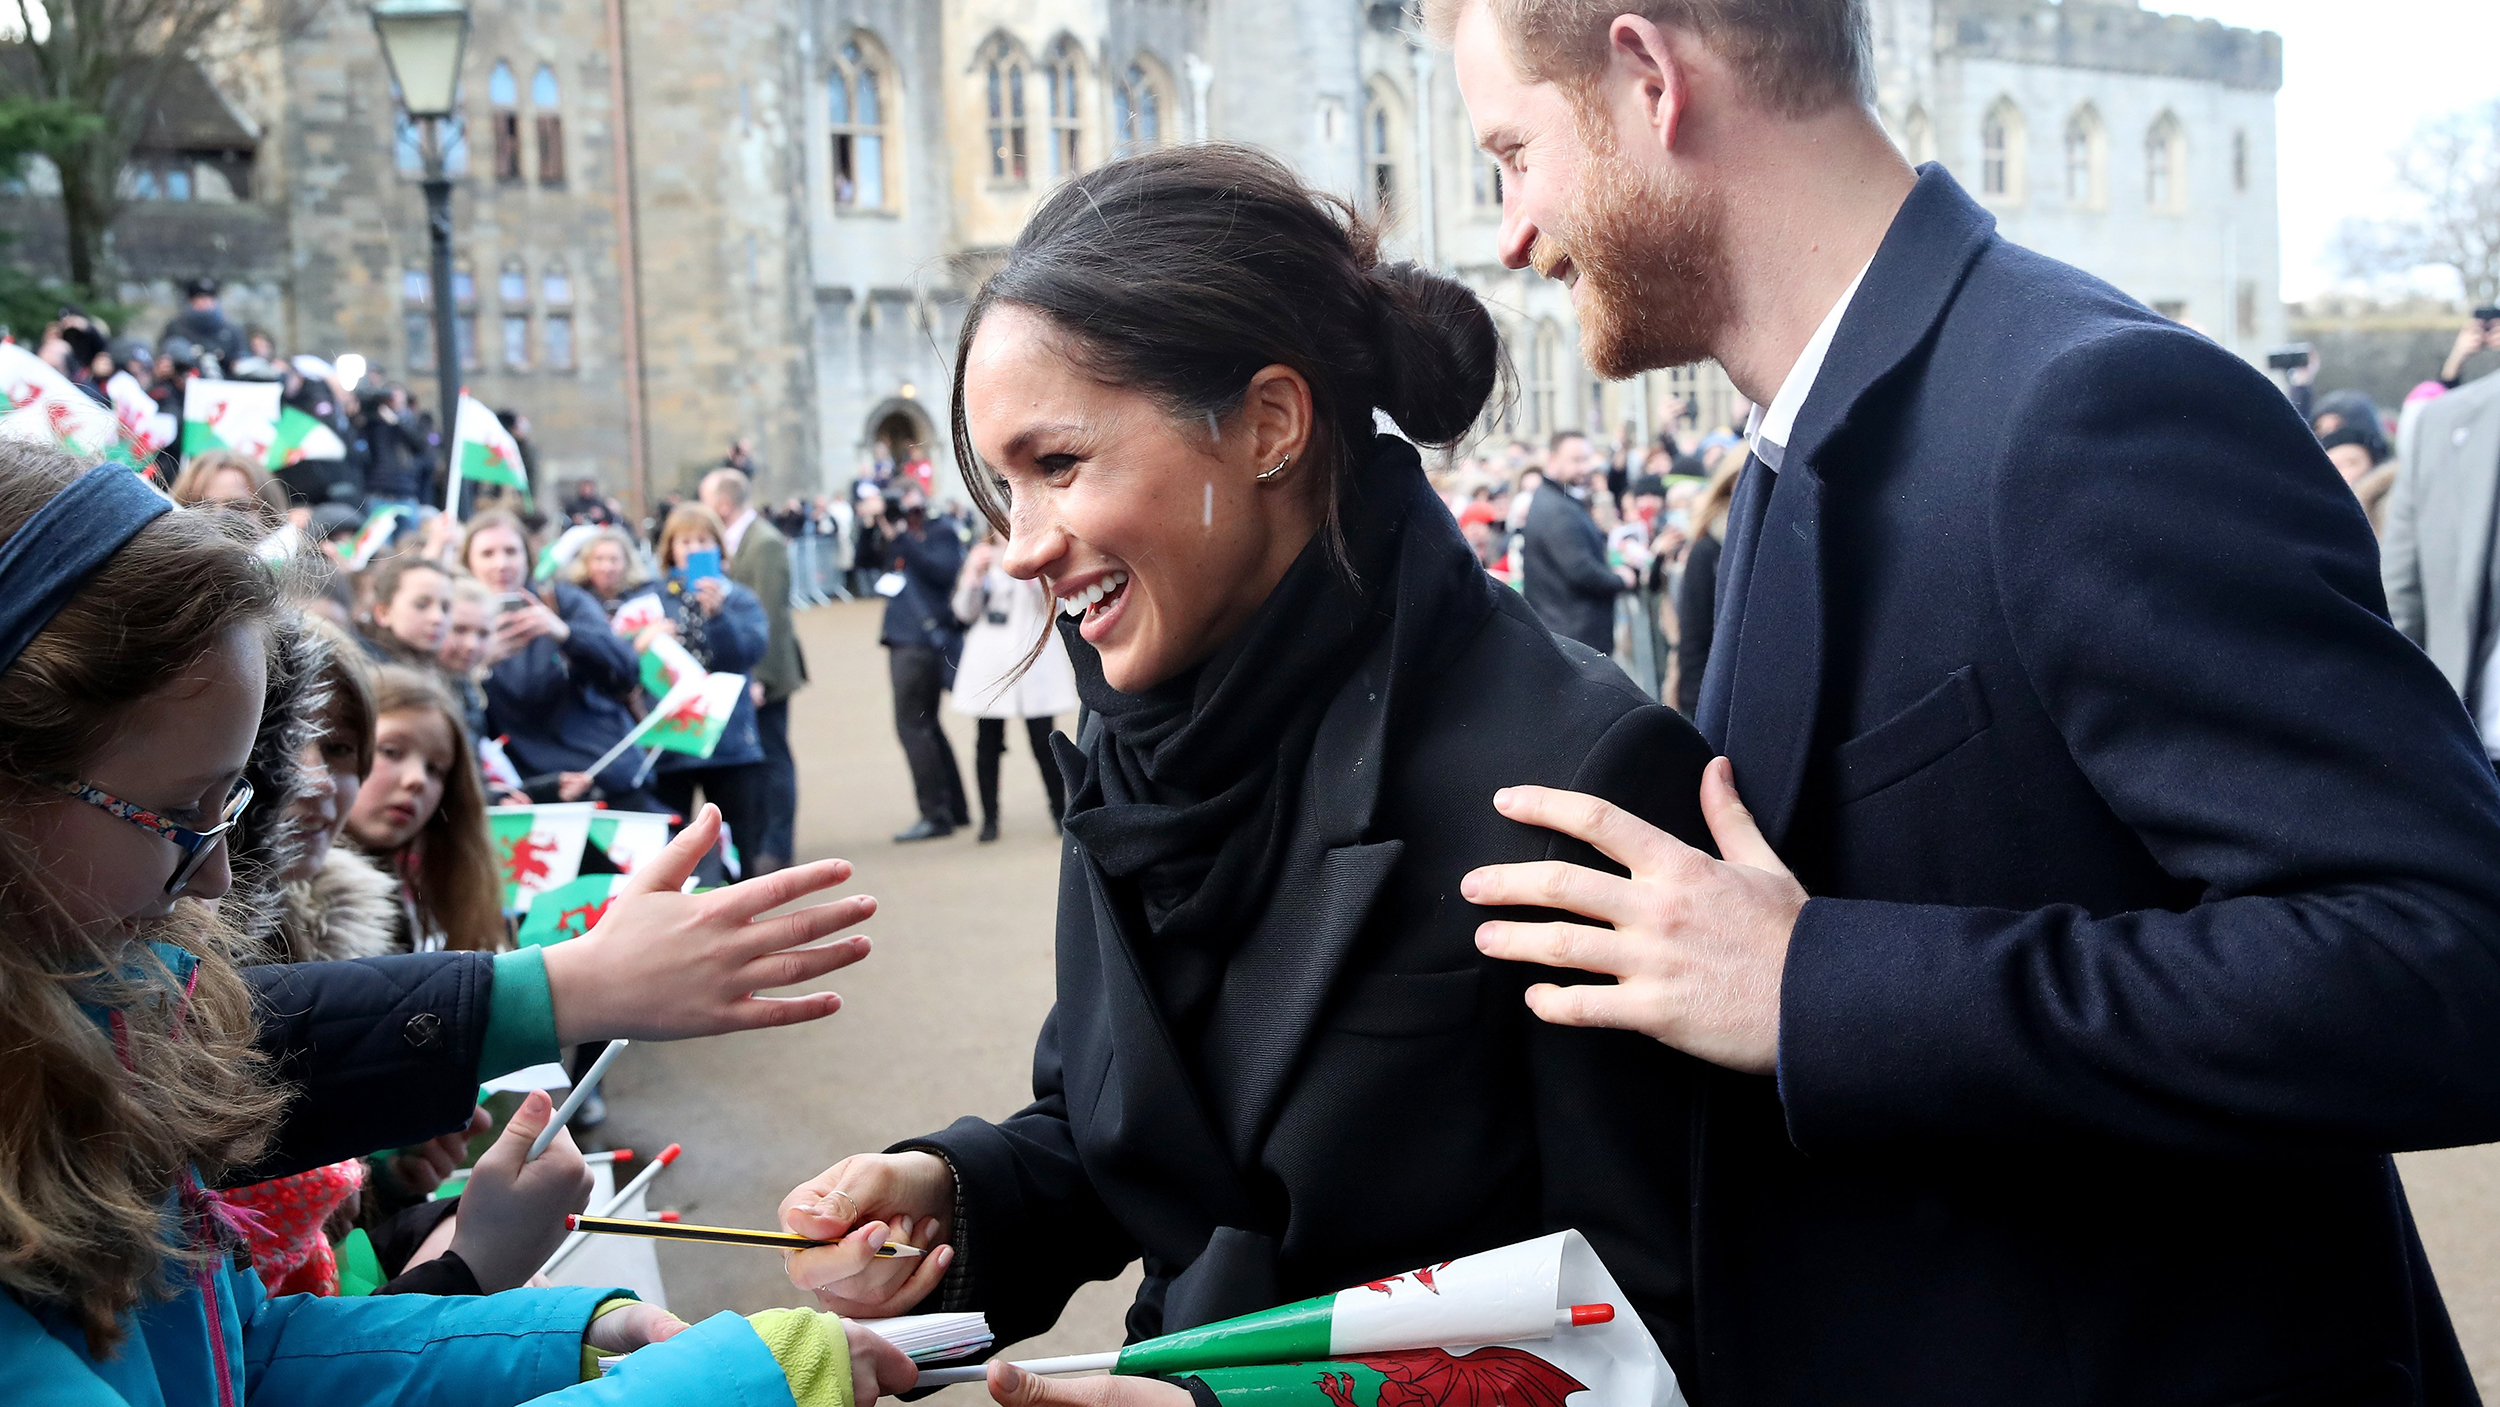 See Prince Harry and Meghan Markle charm crowds during visit to Wales